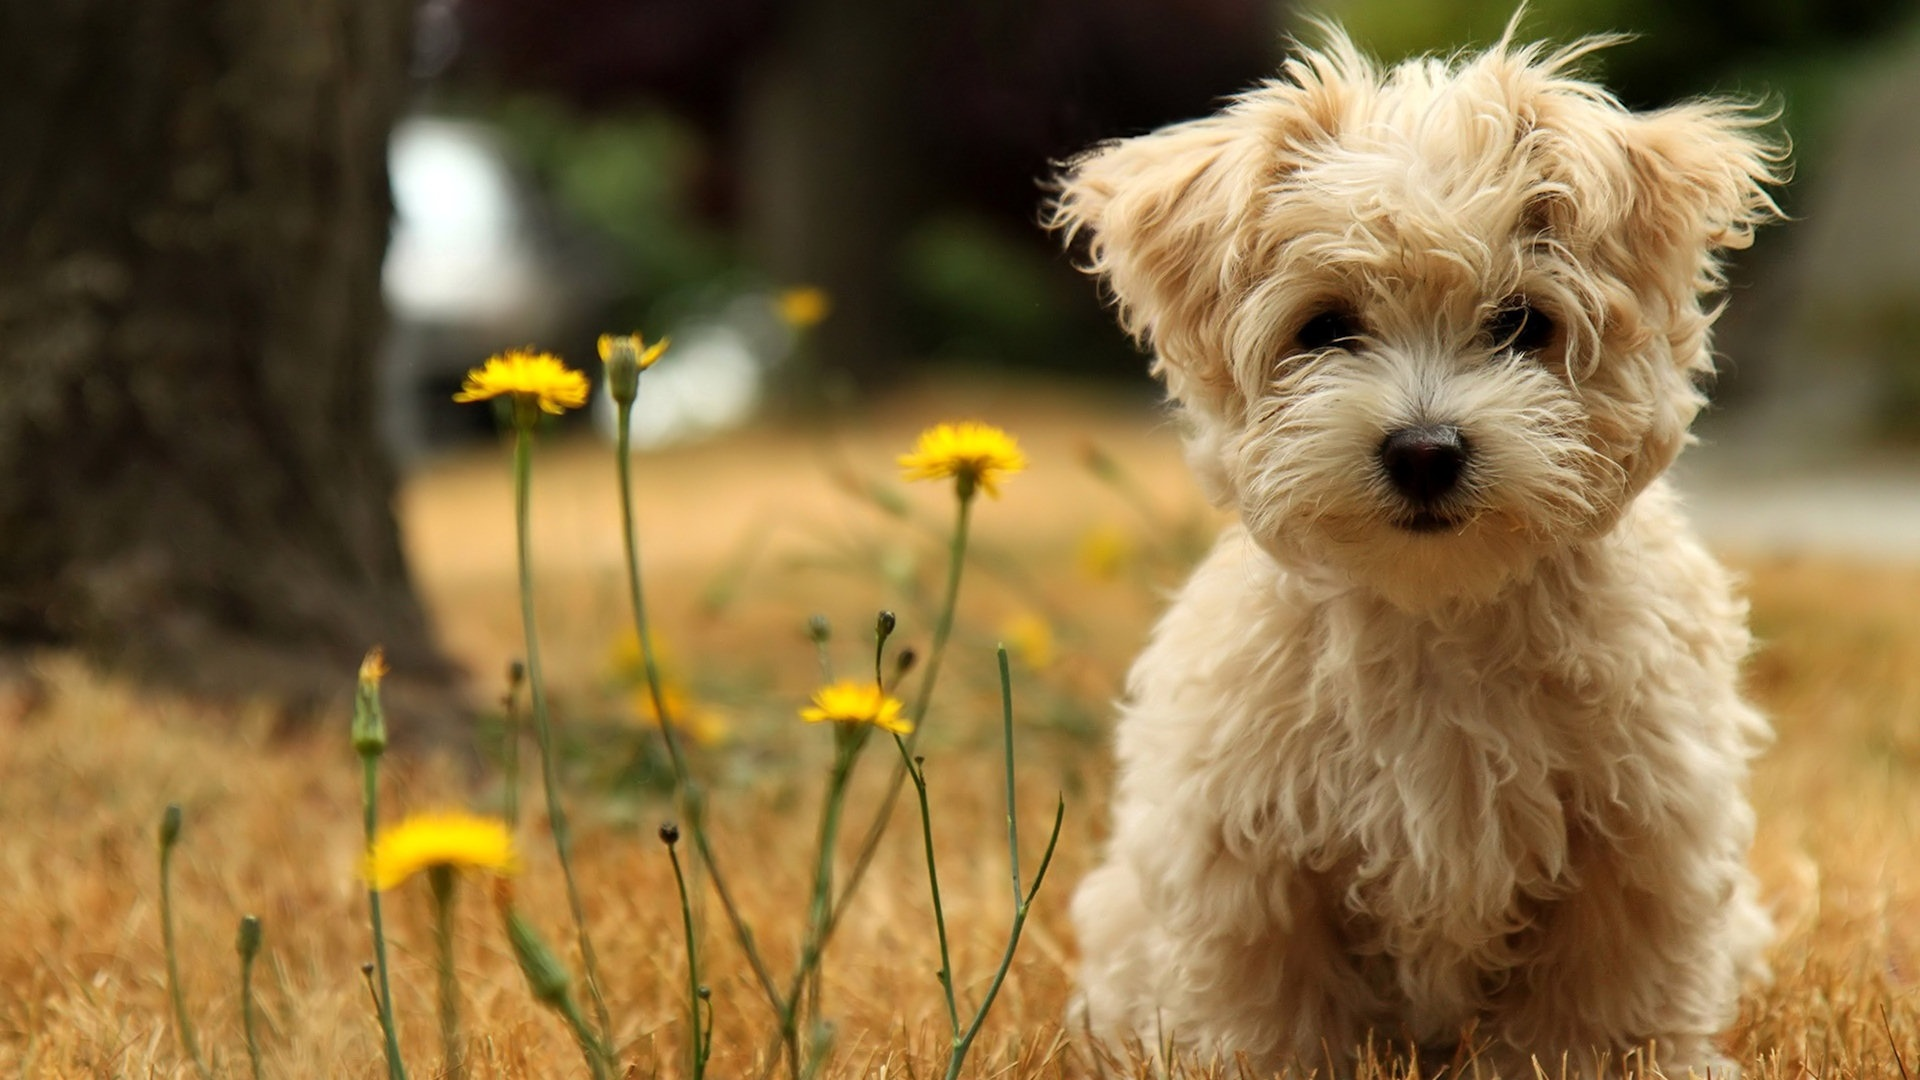 30 Beautiful Dog Wallpapers